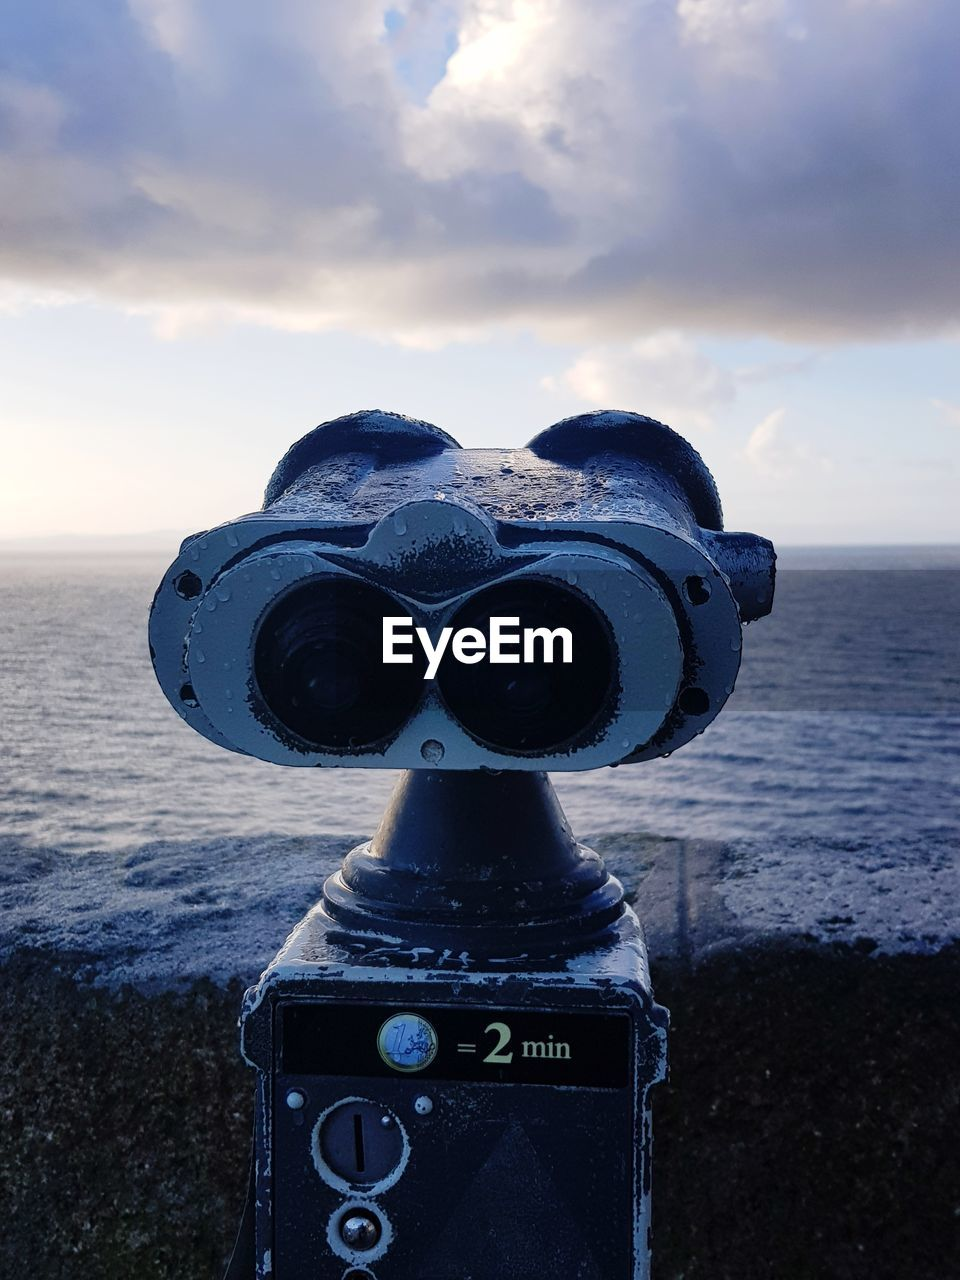 CLOSE-UP OF COIN-OPERATED BINOCULARS ON SEA SHORE